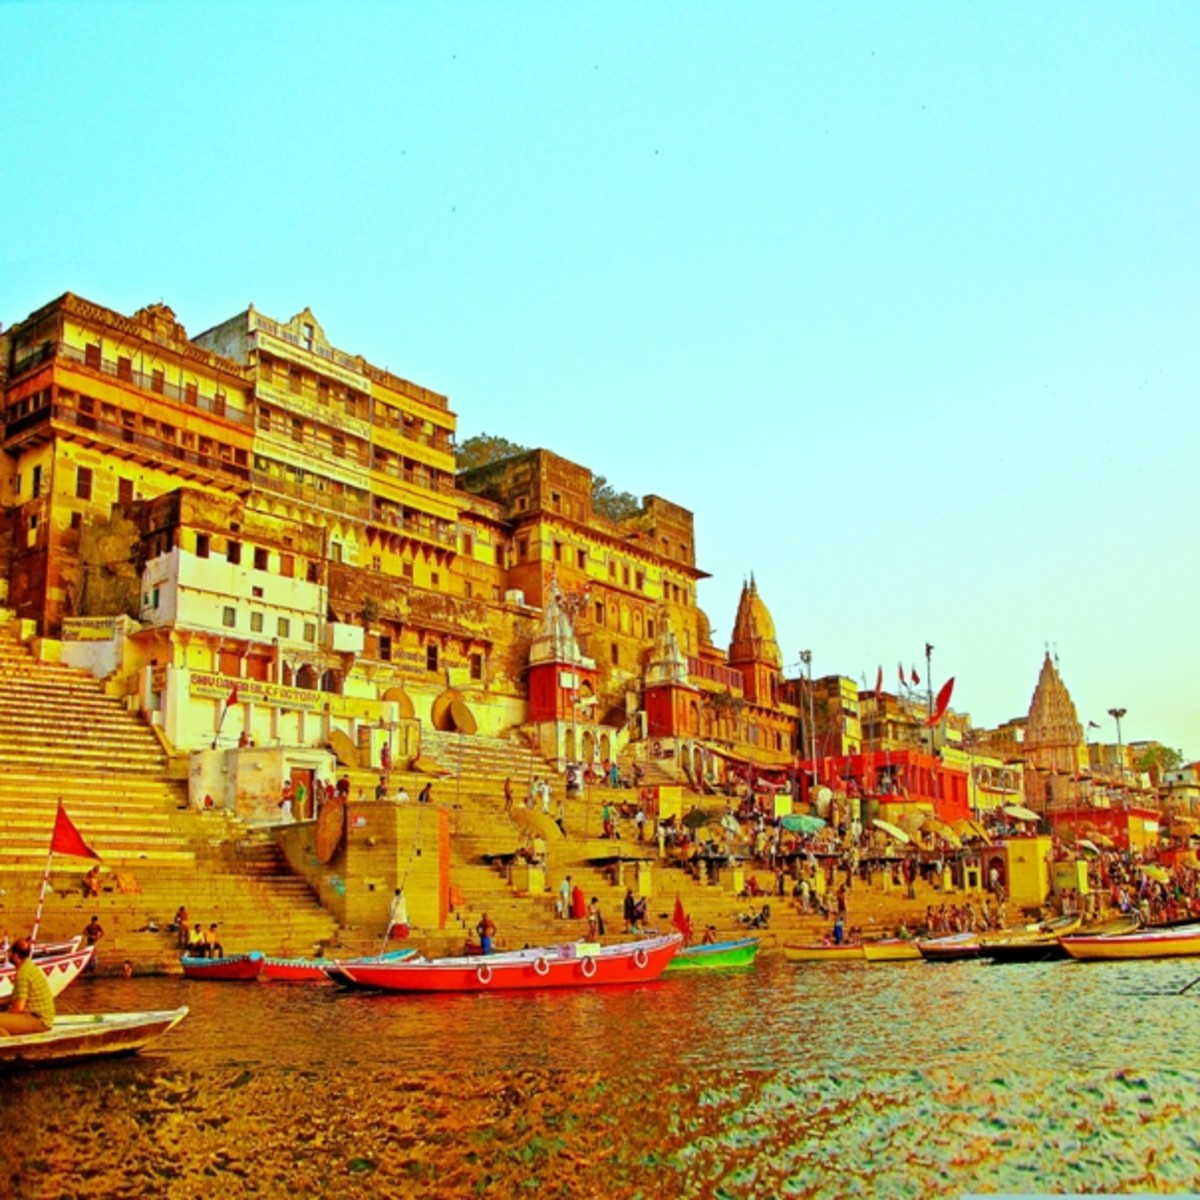 Varanasi: A reflection of Indian traditions and philosophy